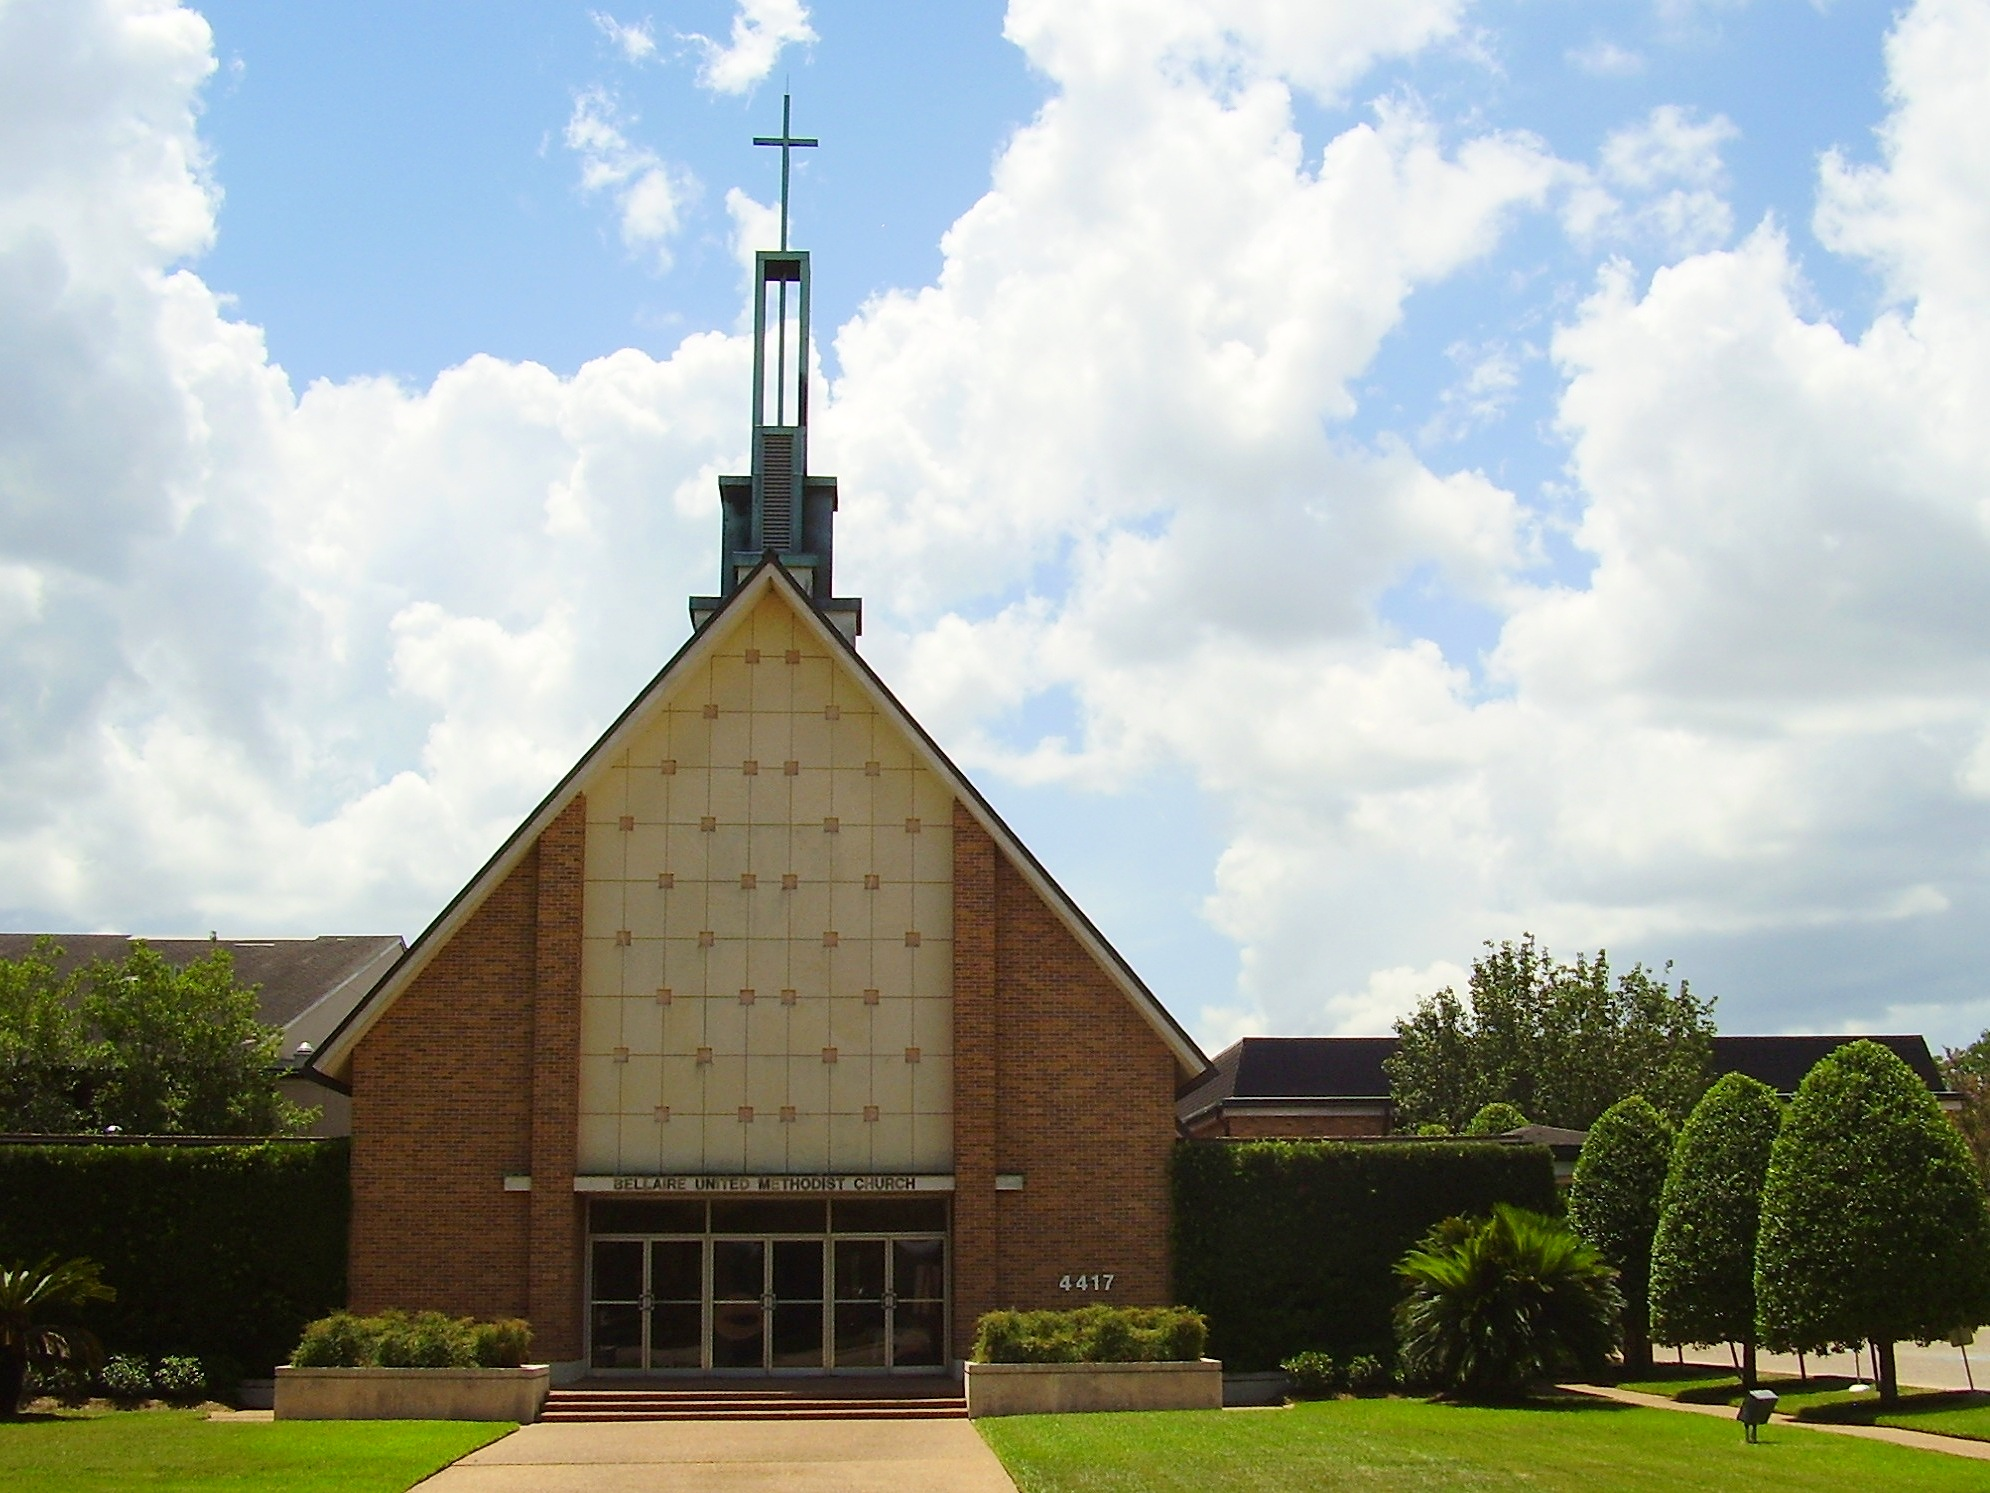 Bellaire UMC. Photo credit: Wikimedia Commons